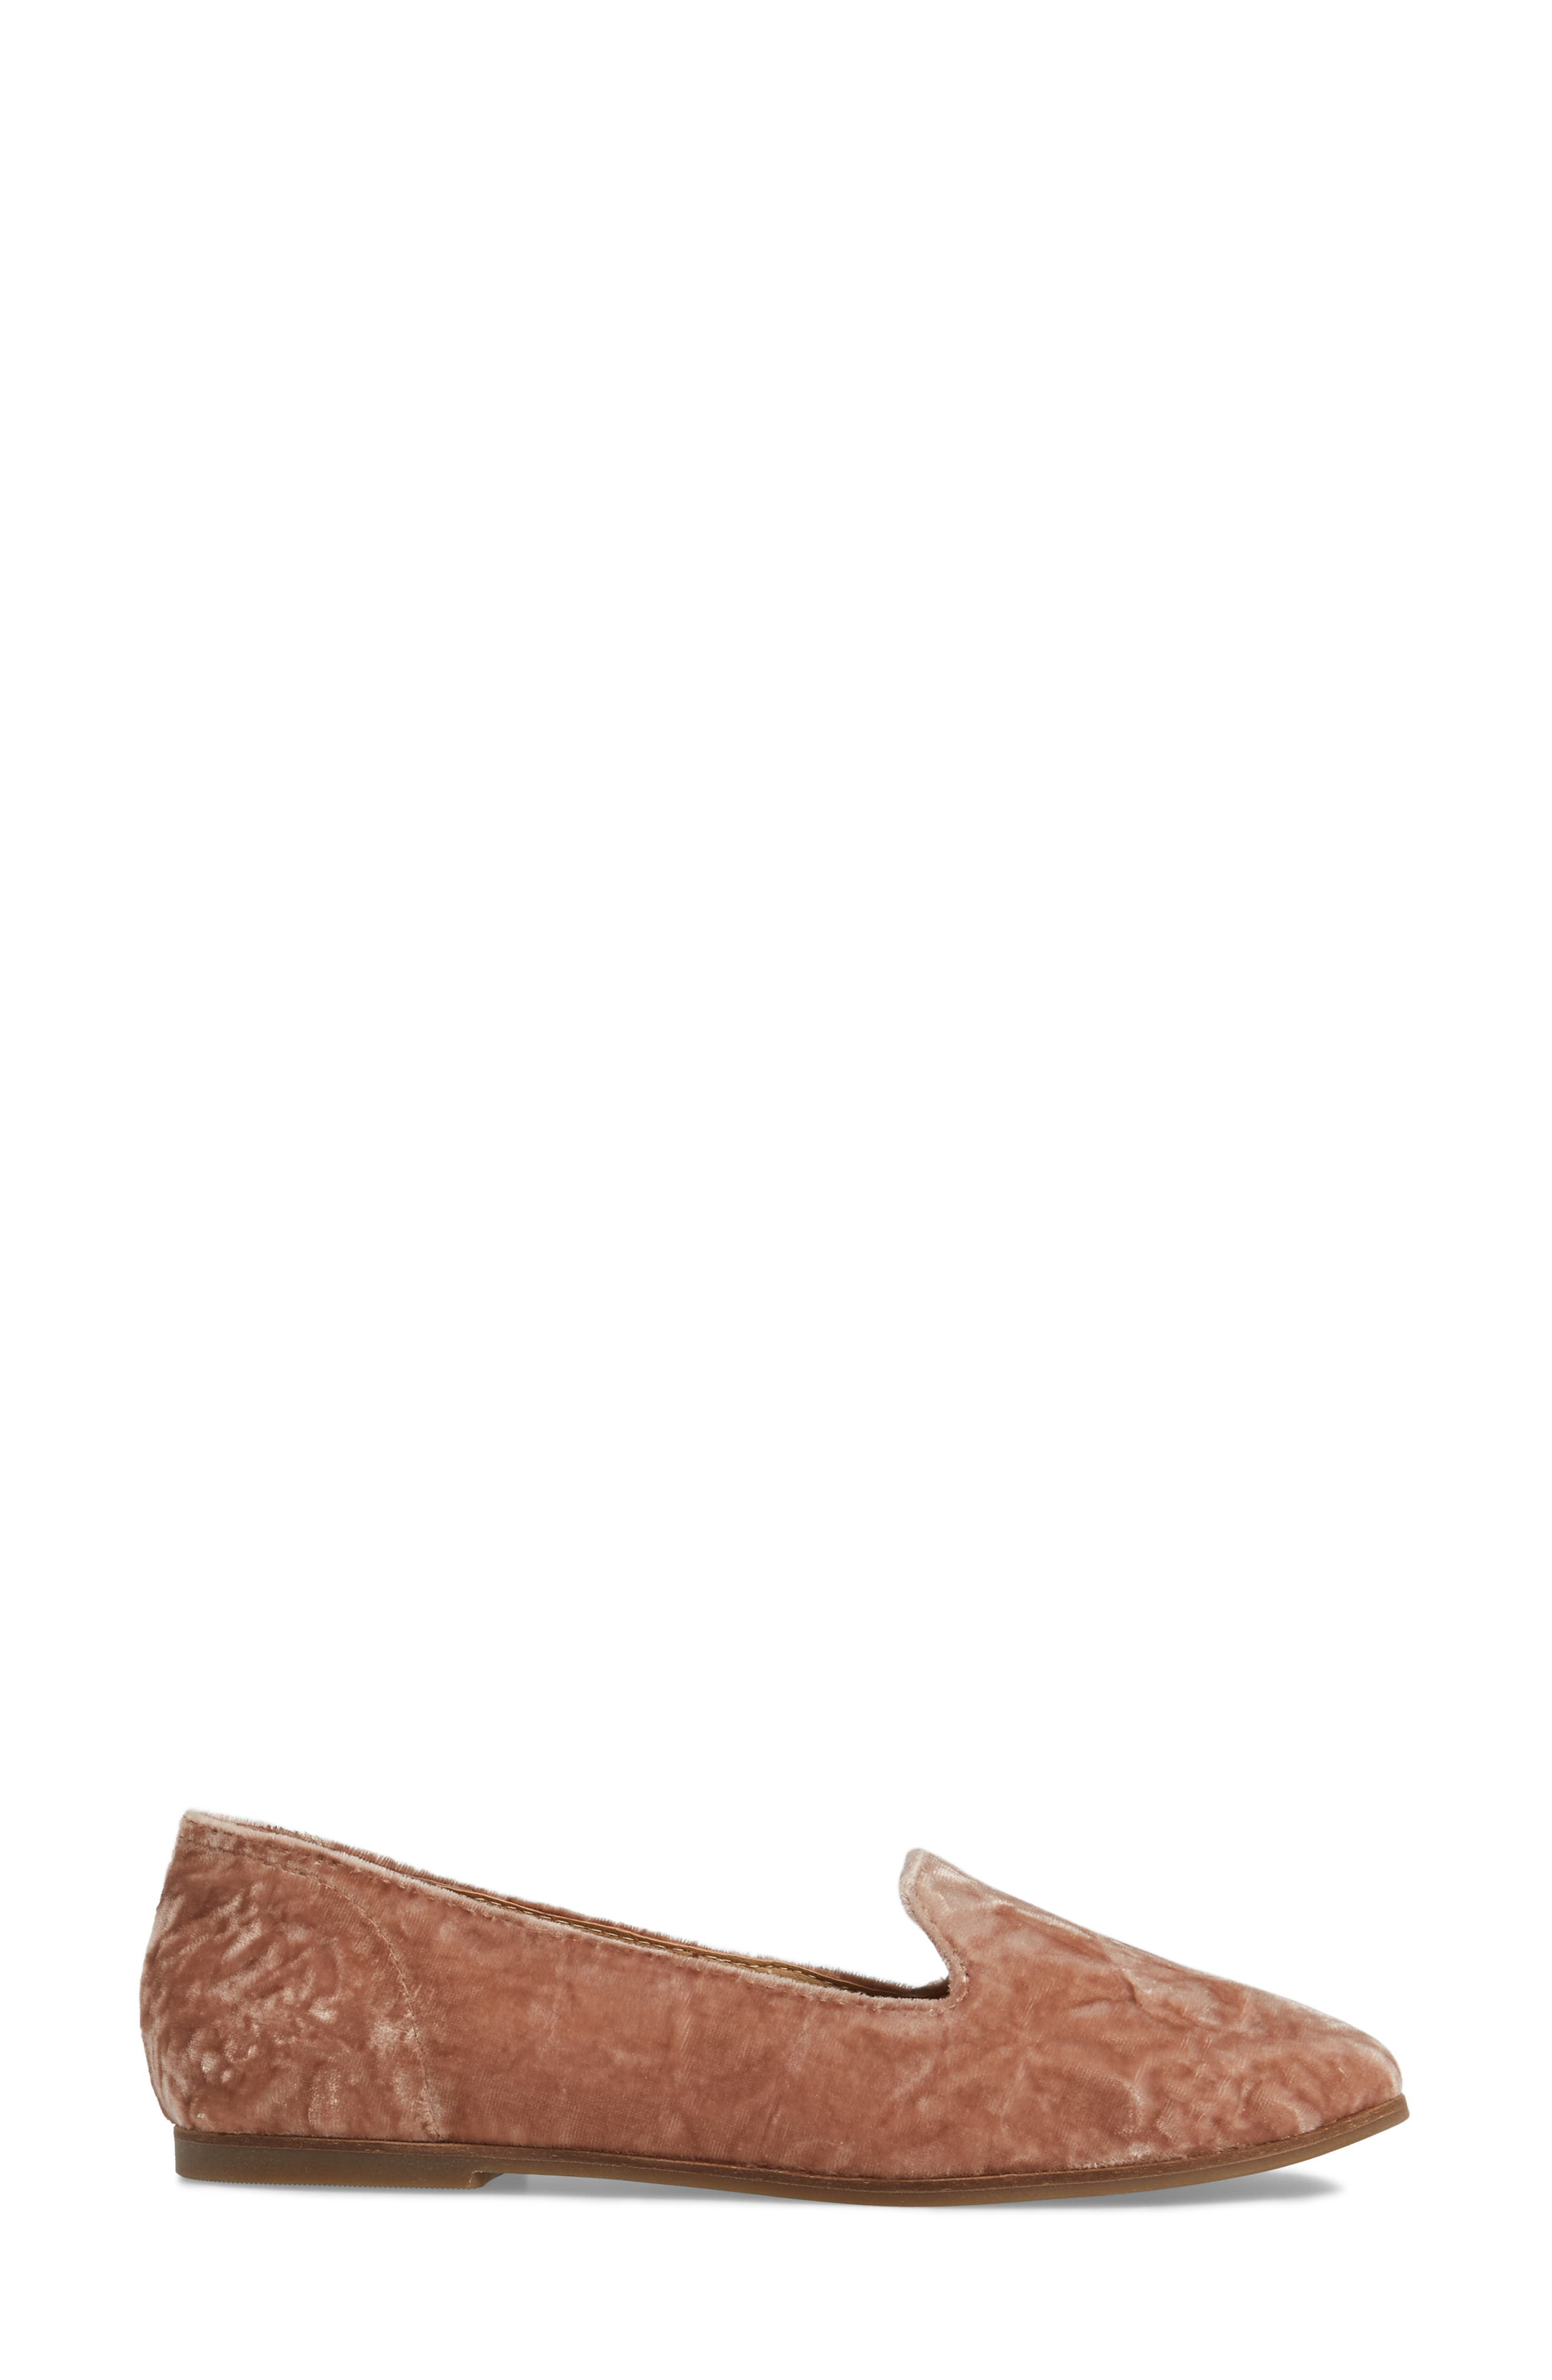 Carlyn Loafer Flat,                             Alternate thumbnail 12, color,